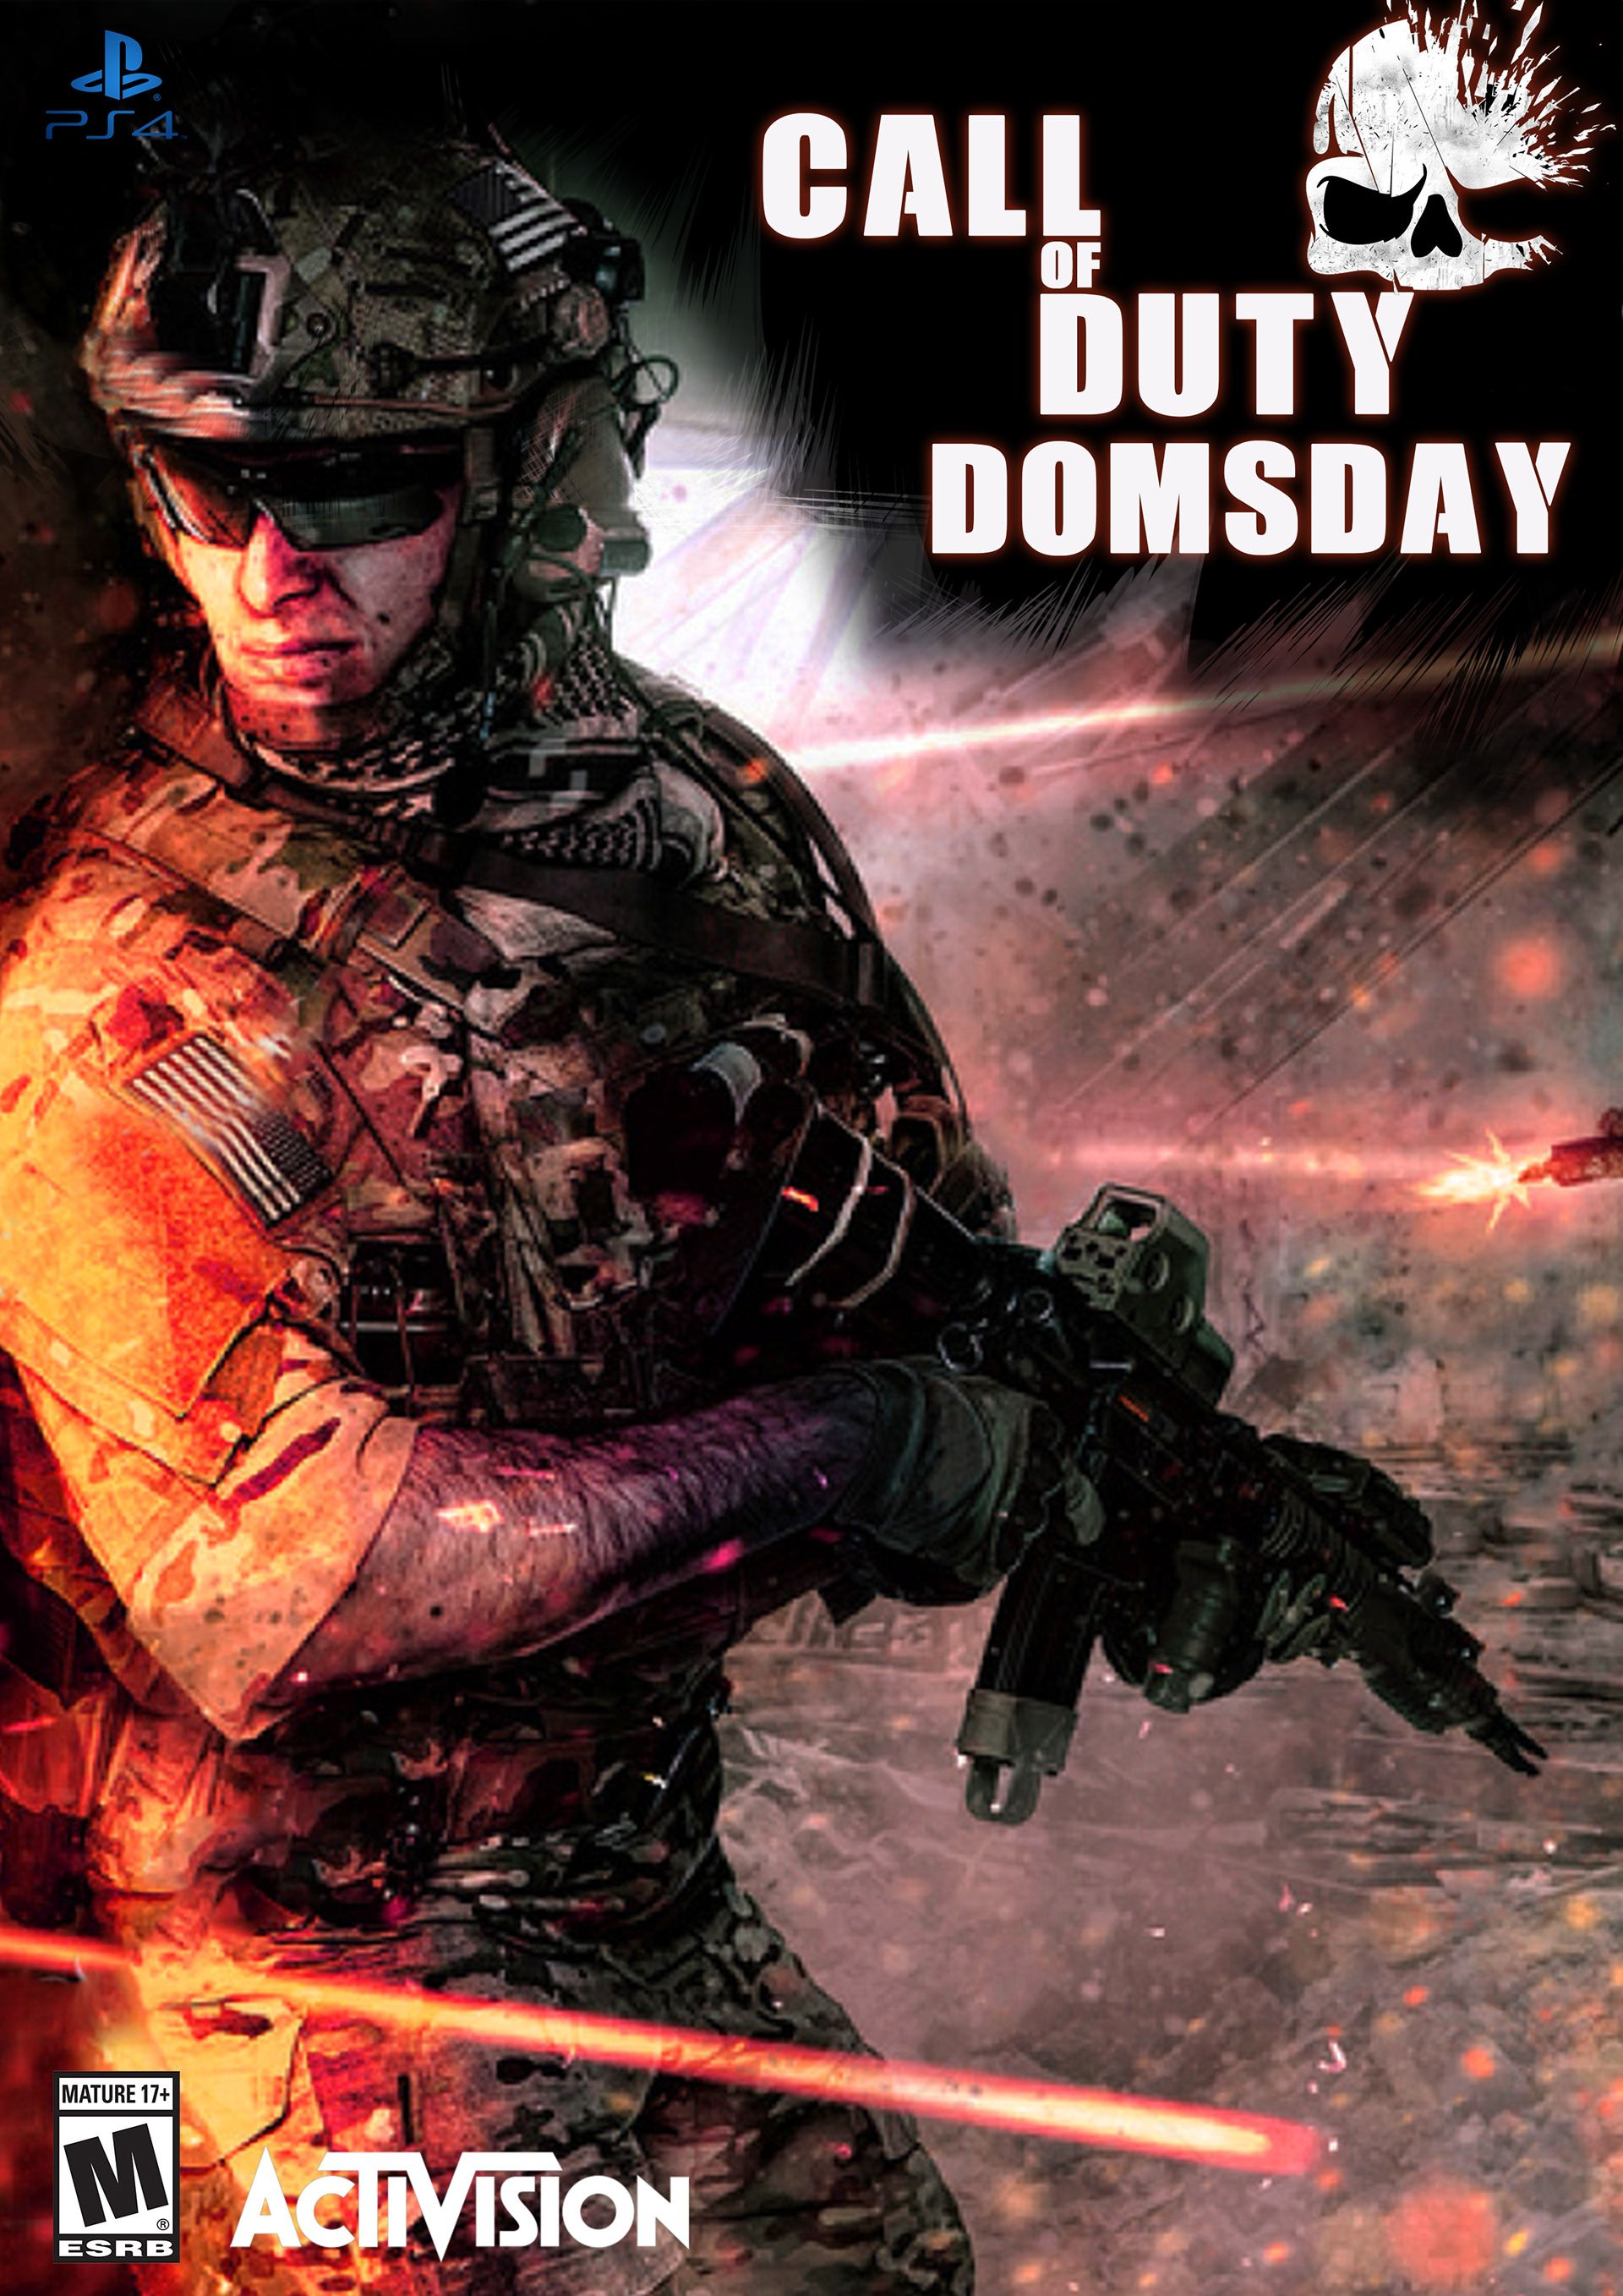 Poster Design Call Of Duty In 2020 Call Of Duty Poster Design Poster